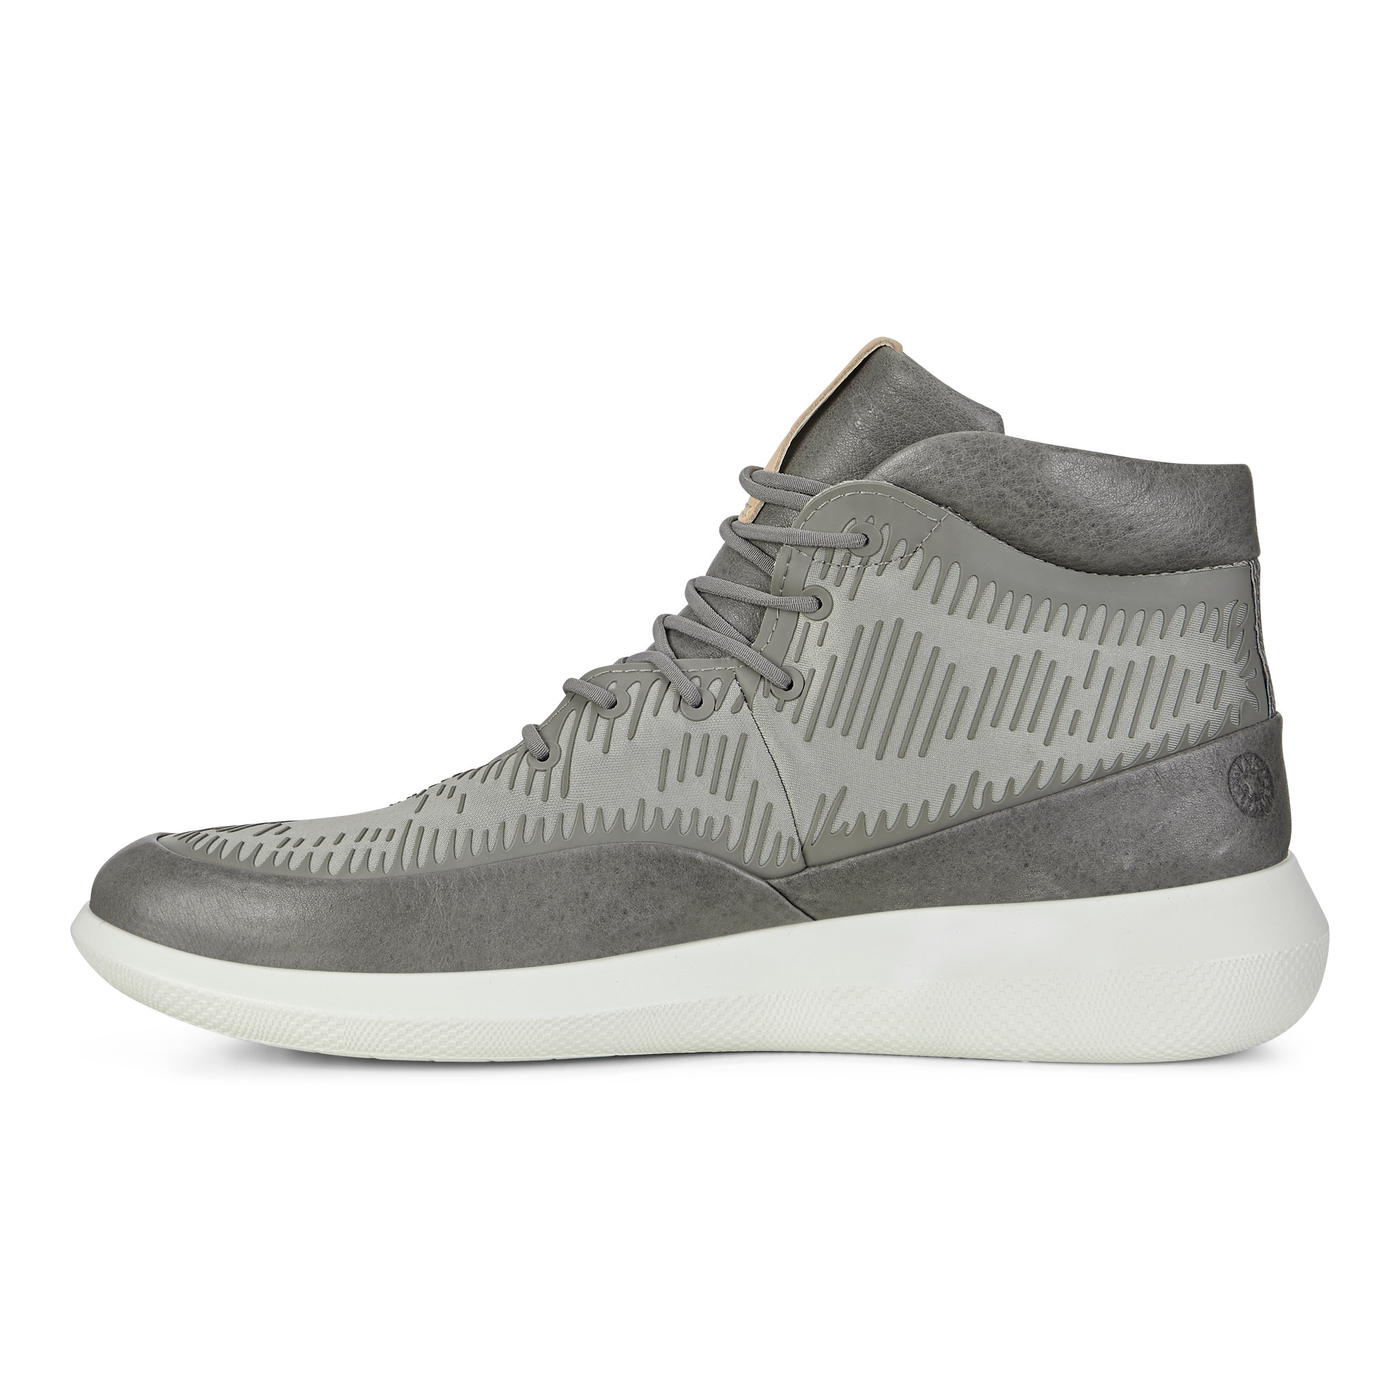 ECCO Mens Scinapse High